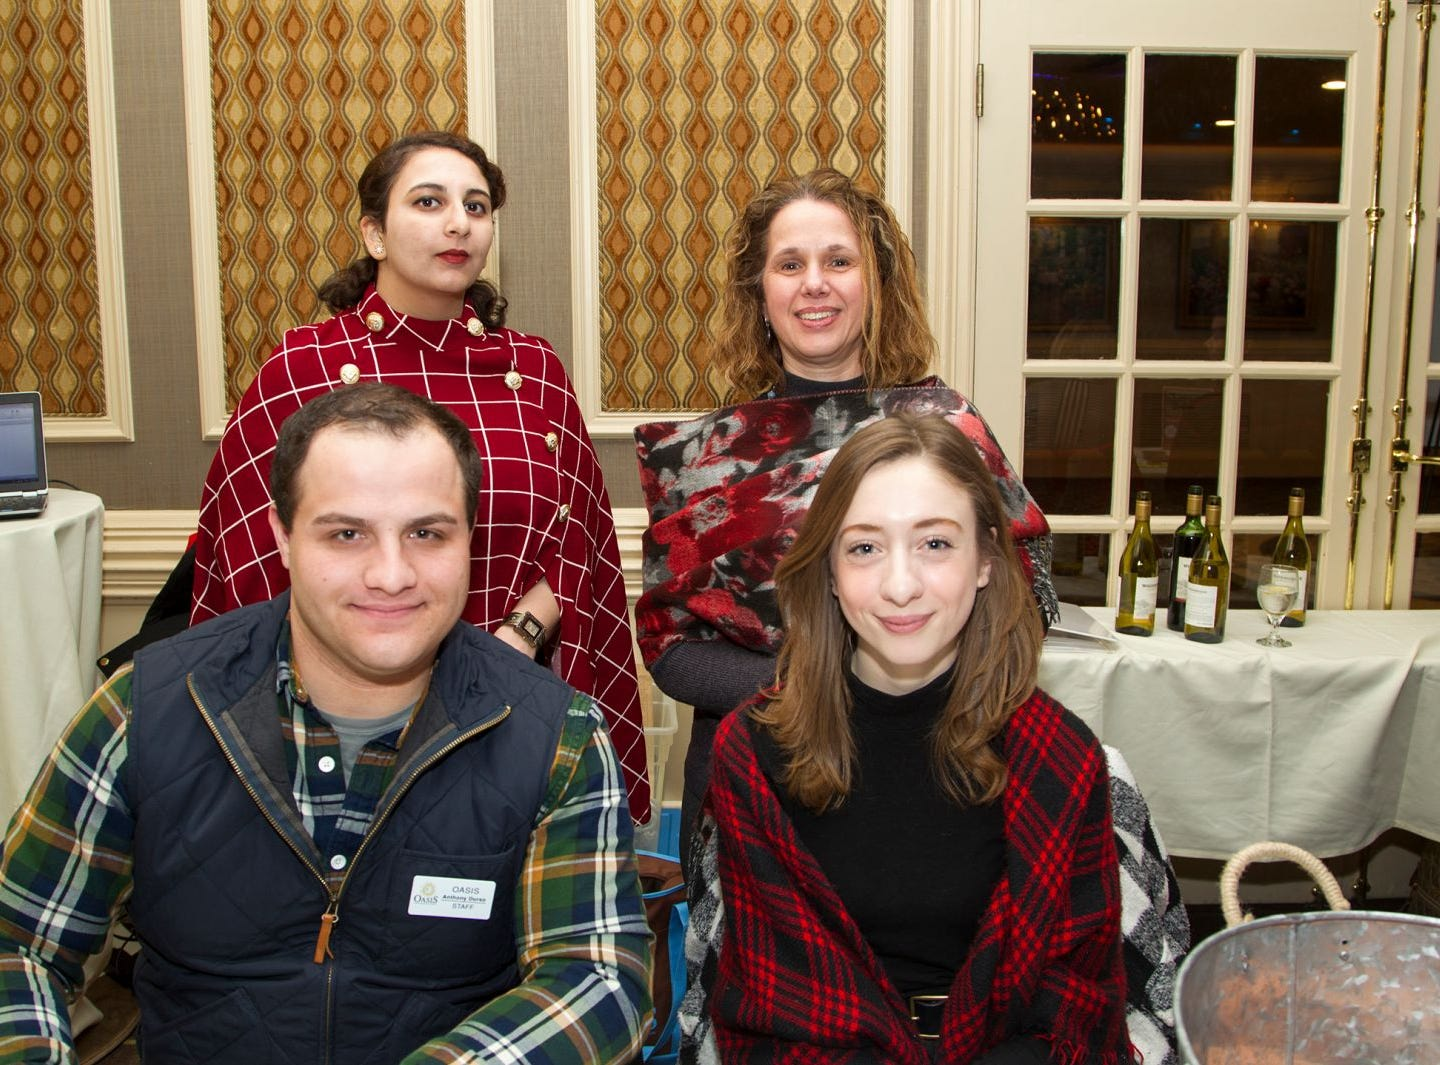 Anthony Durso, Meredith Mulinos, Linda Sisti, Hamna Khuld. A Night at the Races hosted by OASIS at the Brownstone in Paterson. 2/7/2019